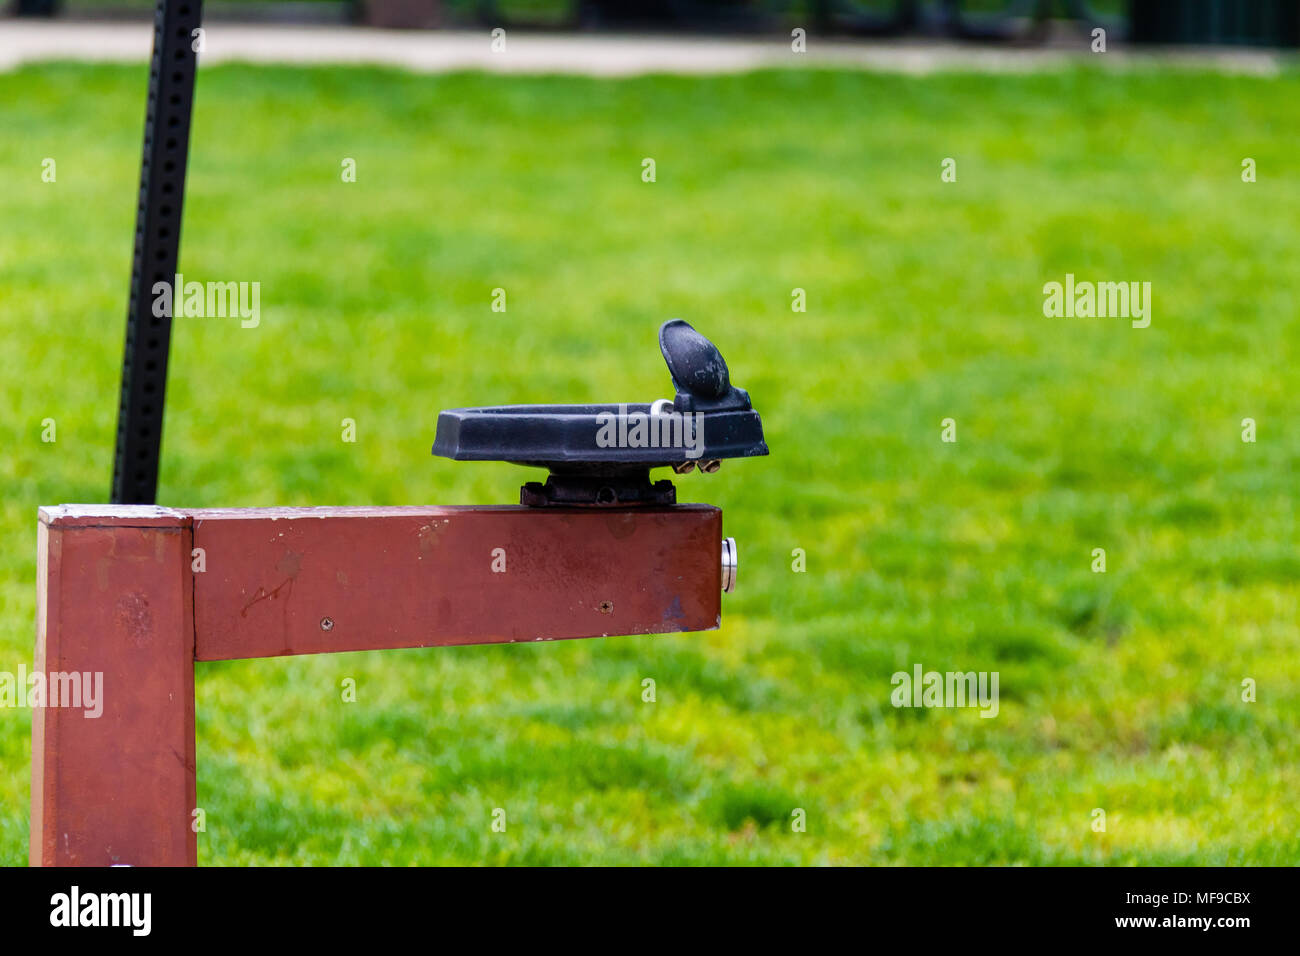 a lonely water fountain in a public park - Stock Image